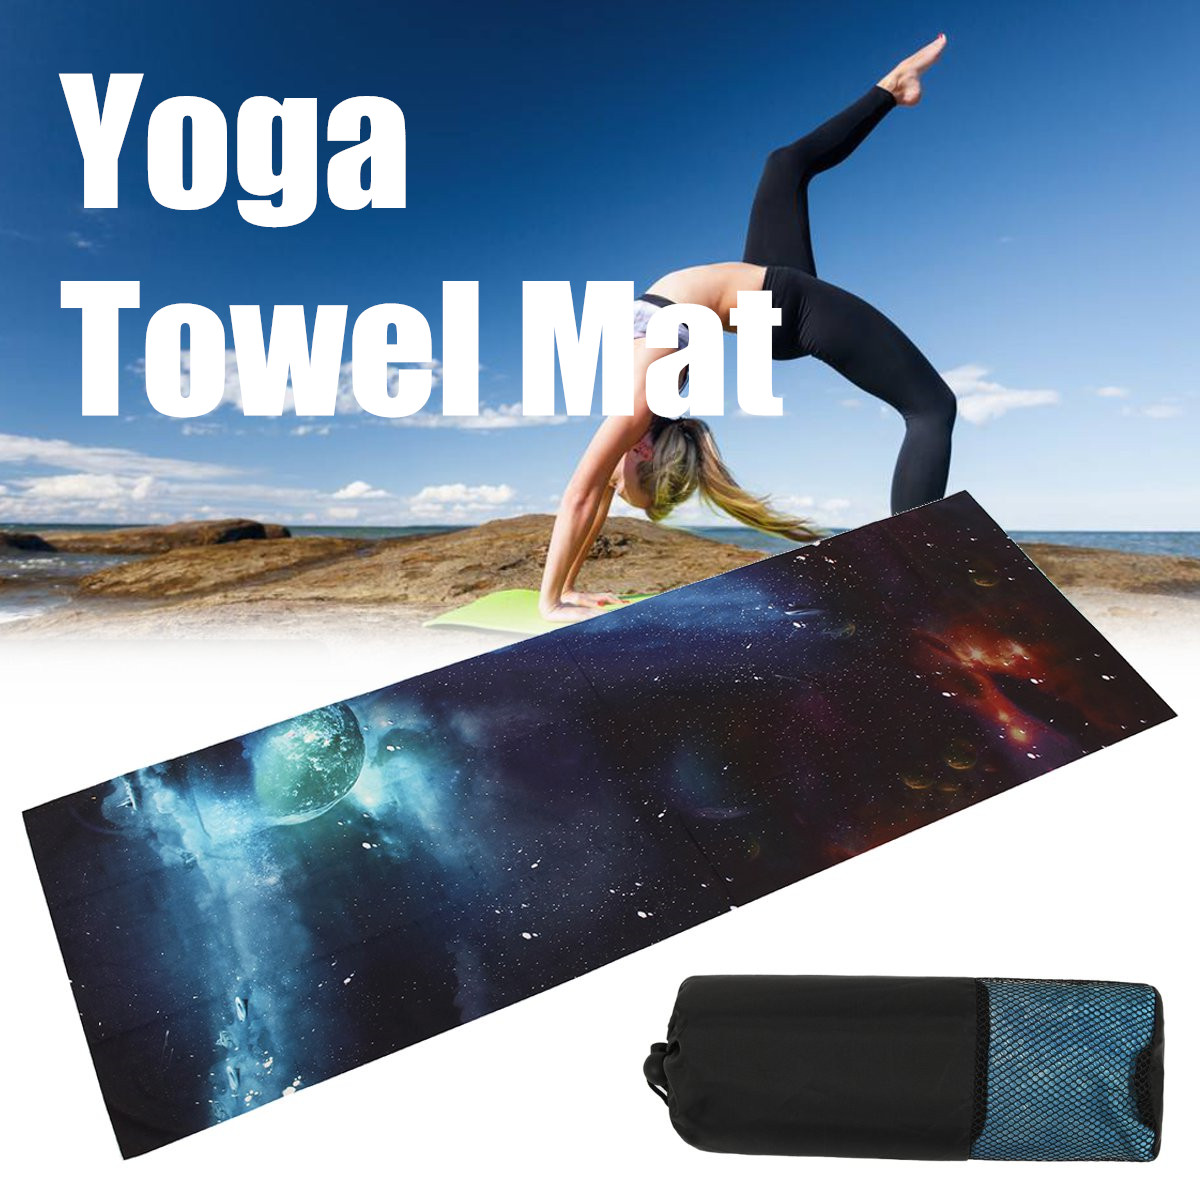 183x61cm Environmental Non-slip Yoga Mats For Fitness Pilates Mats Gym Exercise Carpet Mats Pads With Yoga Bags Sports Tools Vivid And Great In Style